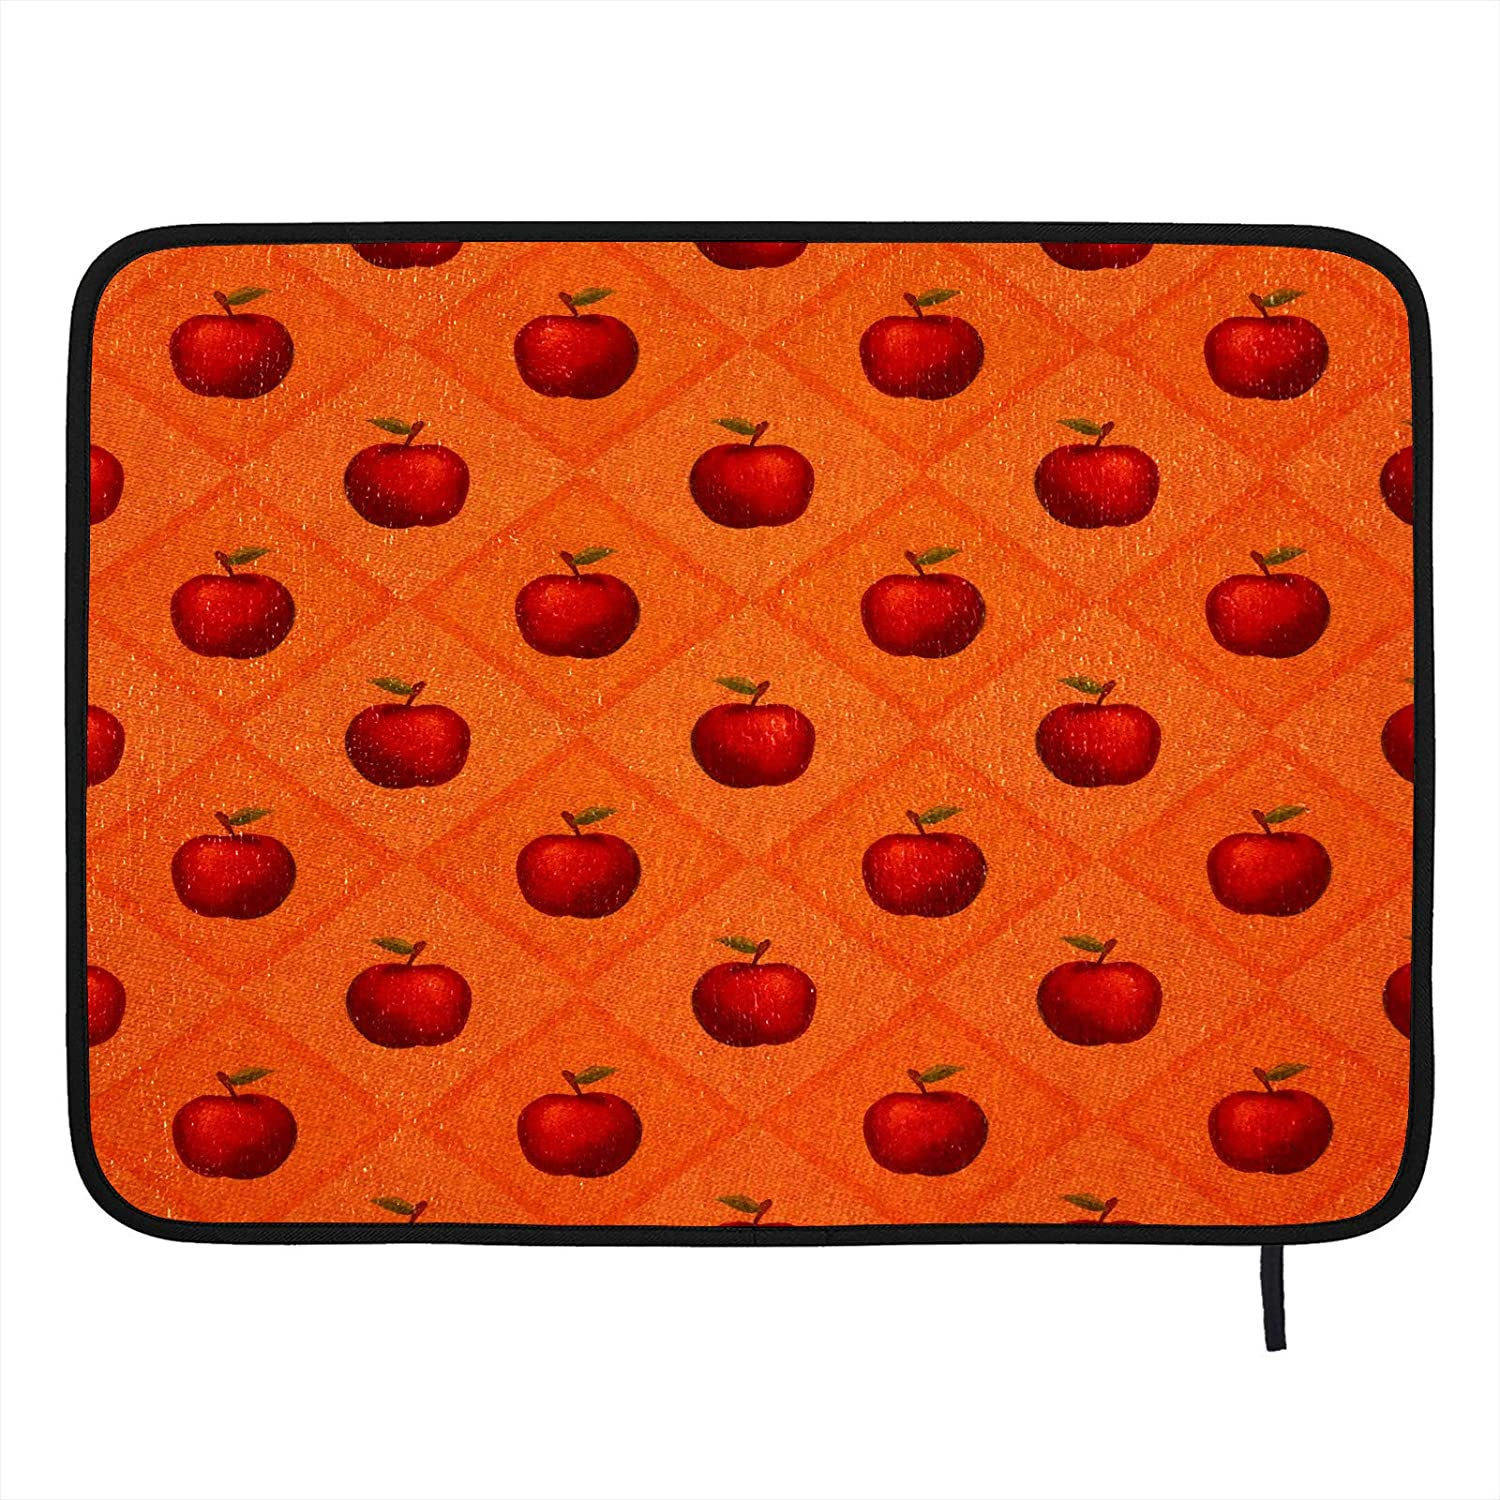 Absorbent Dish Drying Mat Fruit Red Fresh Apple Kitchen Counter Mat Protector Heat Resistant Drying Pad Protector Suitable for Kitchen Sink Dining Table decor 18×16 inch